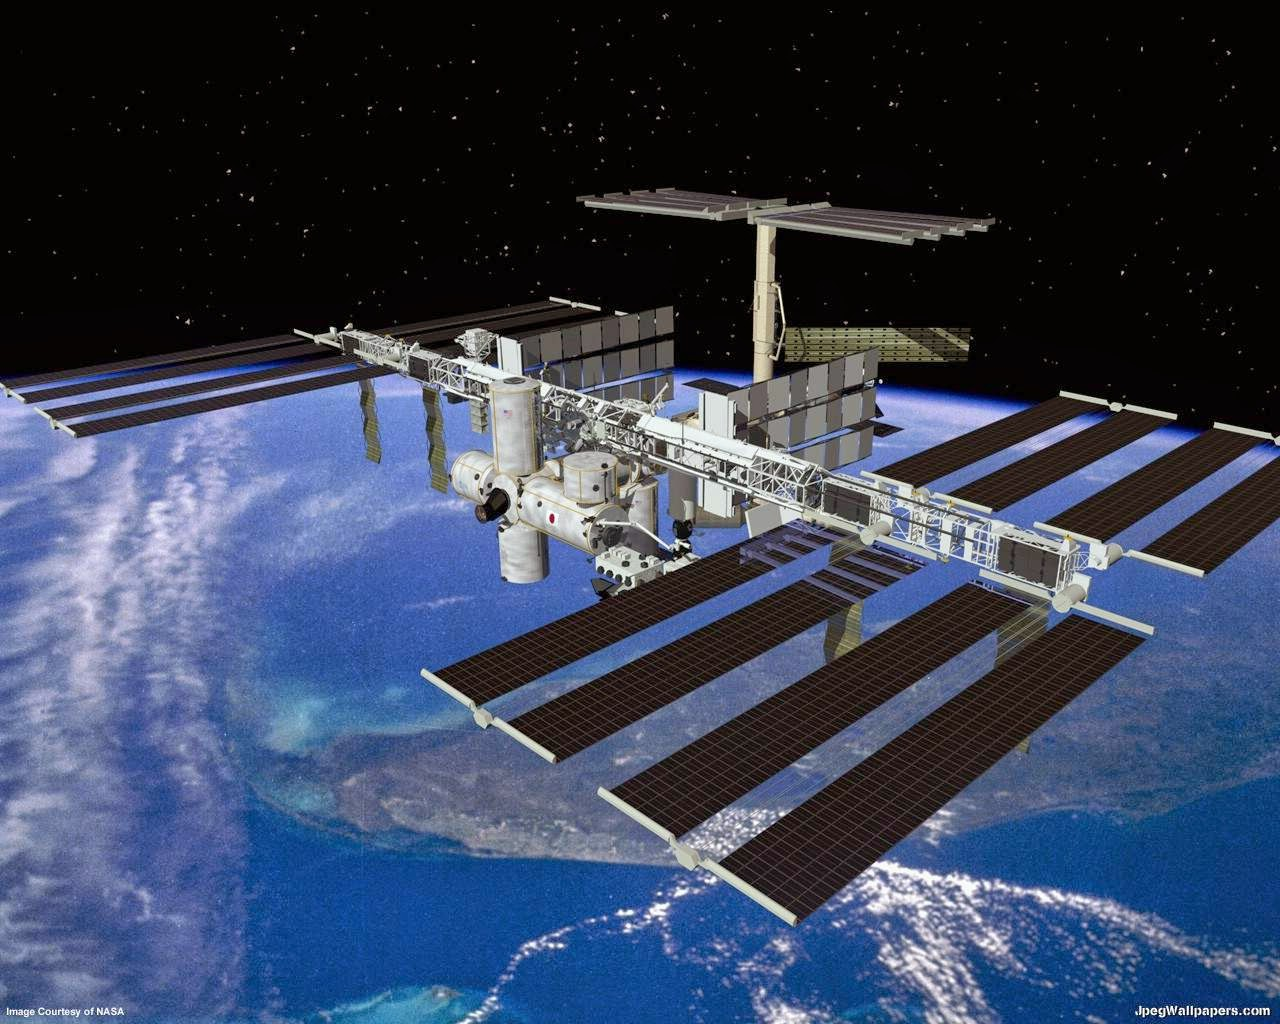 International space station pictures space wallpaper - Space station wallpaper ...